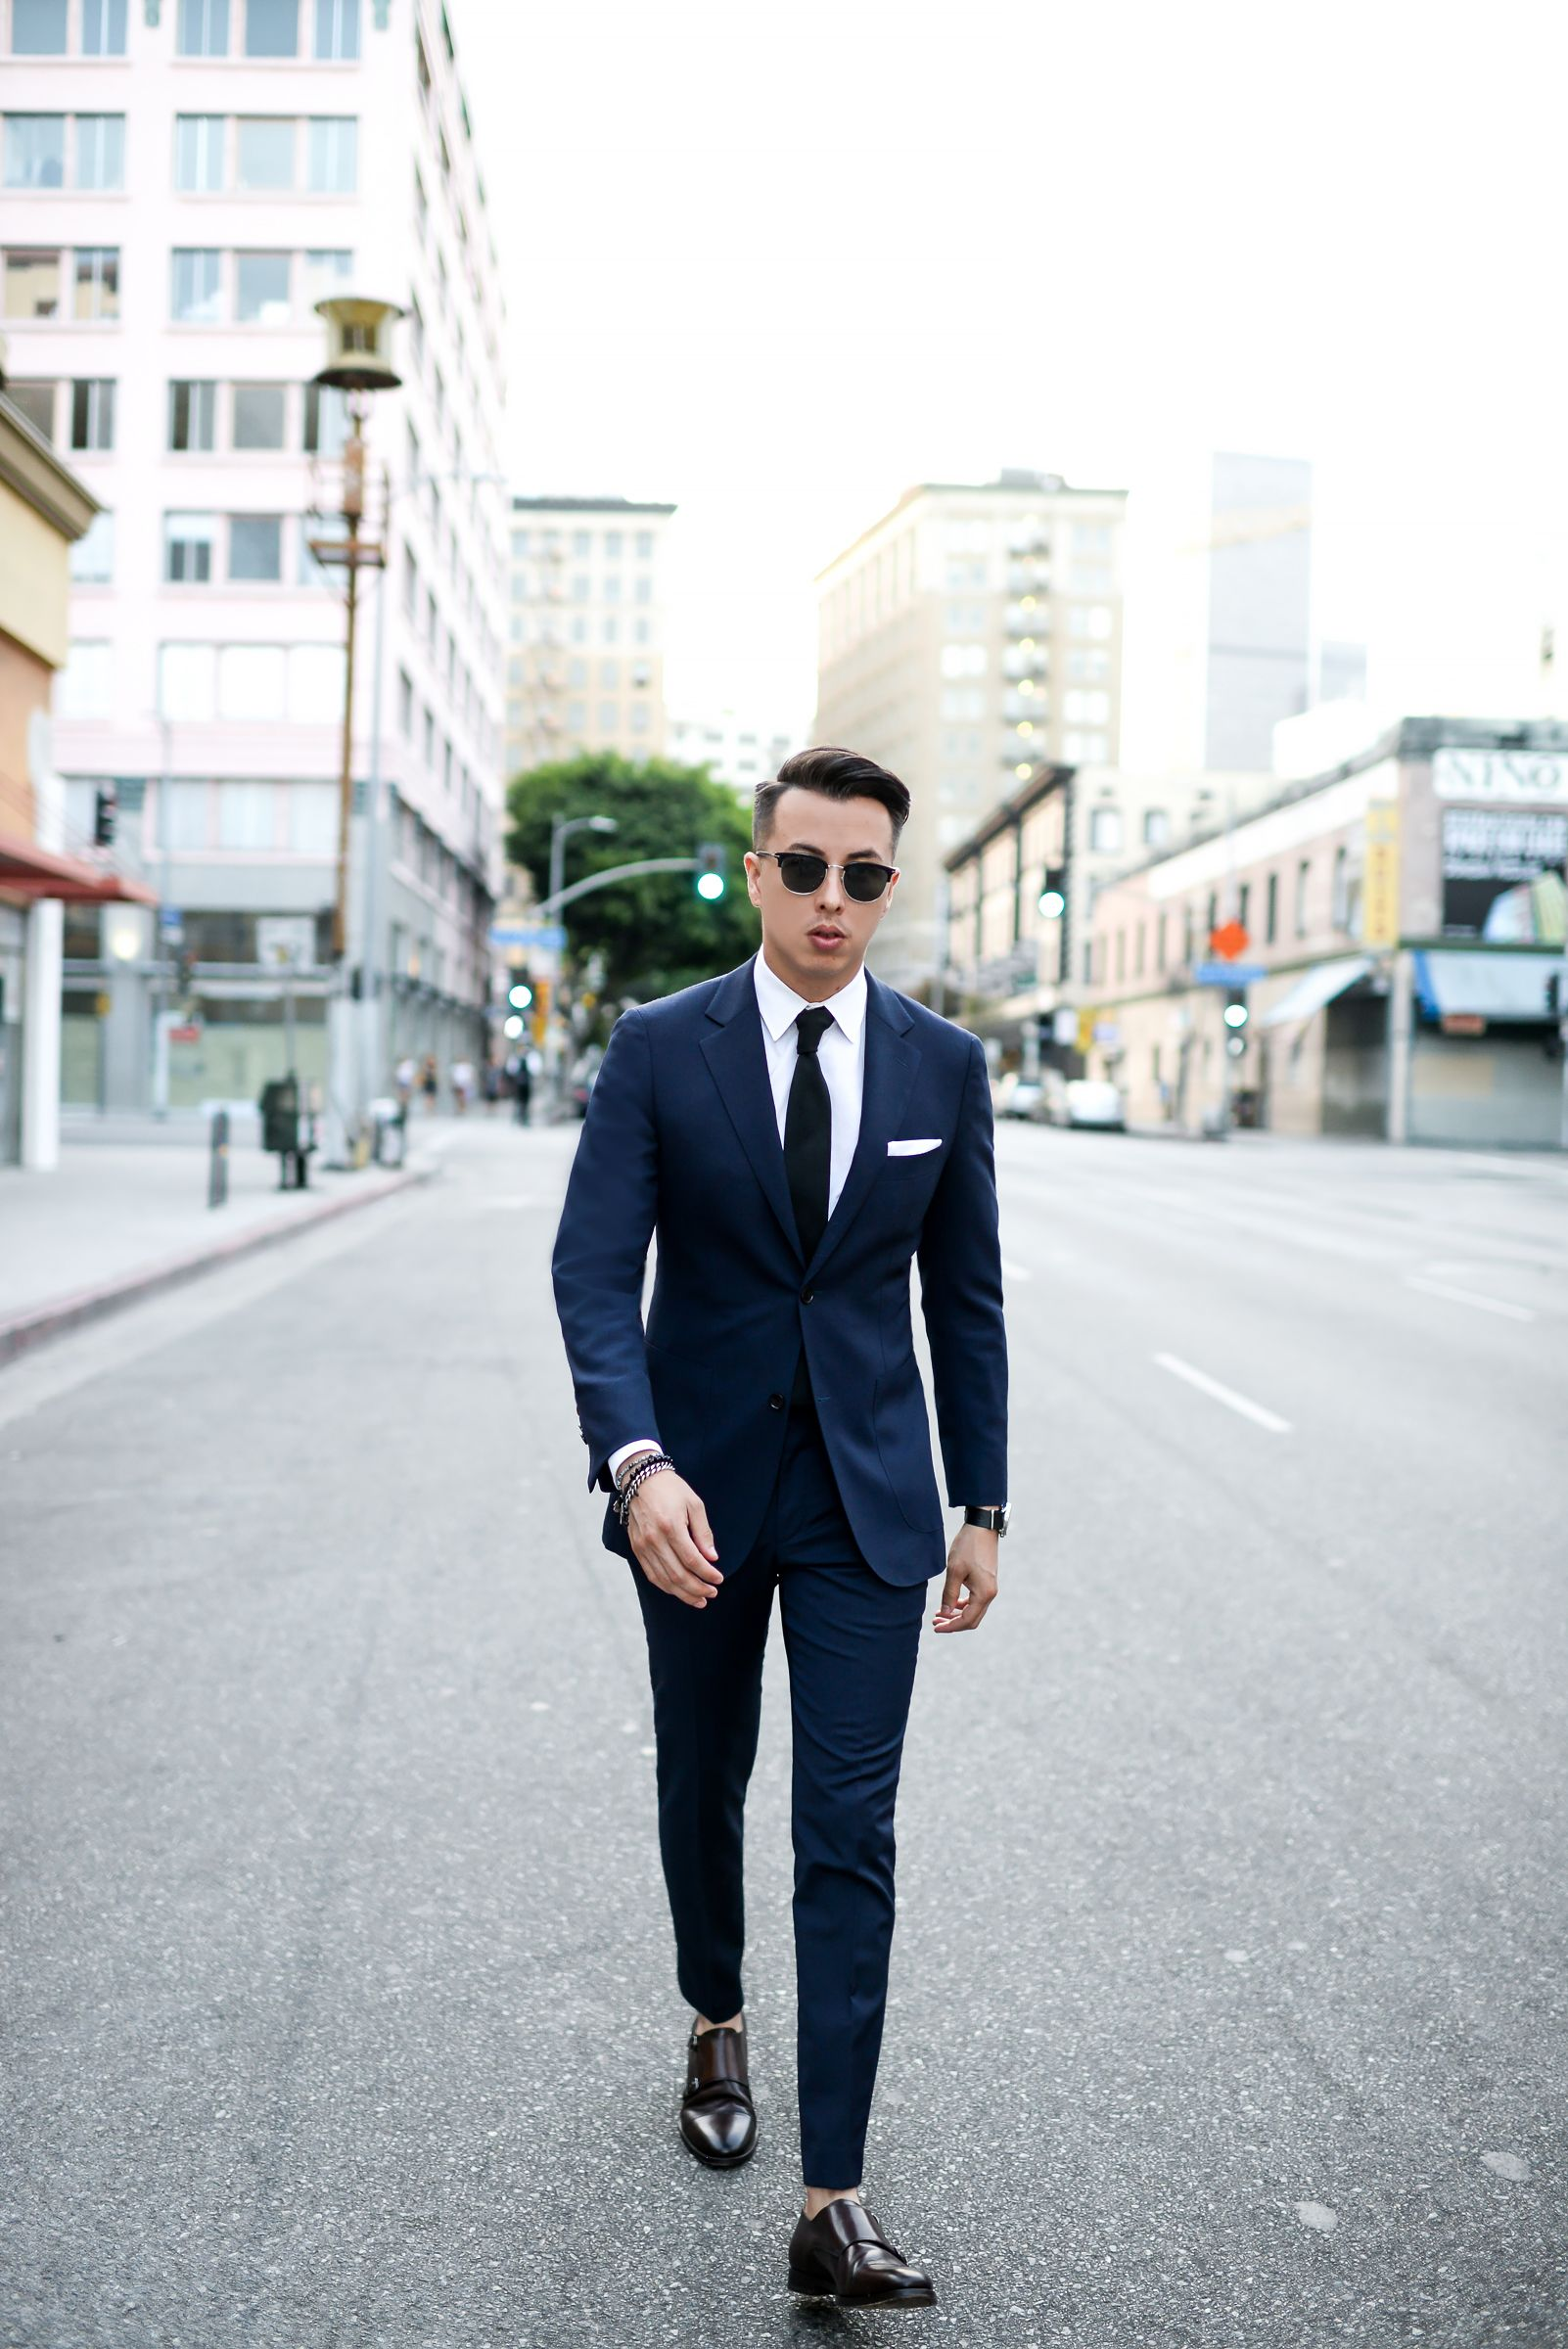 Some Fashion Style Tips Every Man Should Know